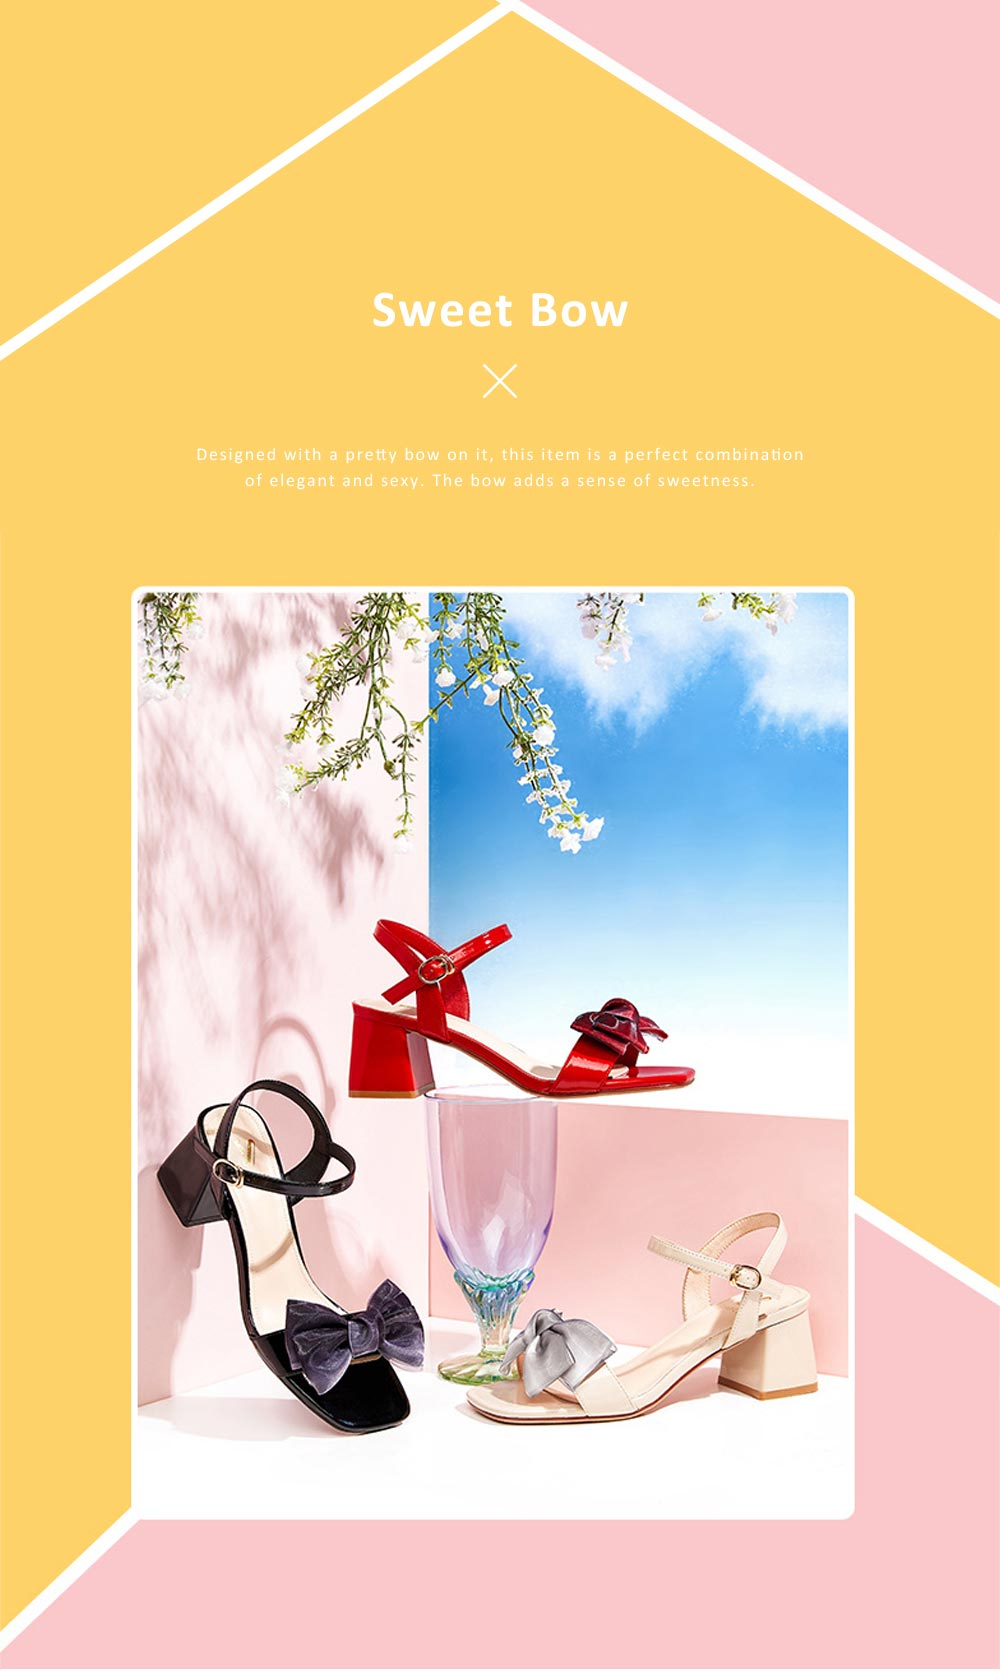 2019 Summer Thick Heel Shoes with  Sweet Bow, PU and Rubber Material Block High Heel Sandals for Shopping, Dating, Party, Holiday 1